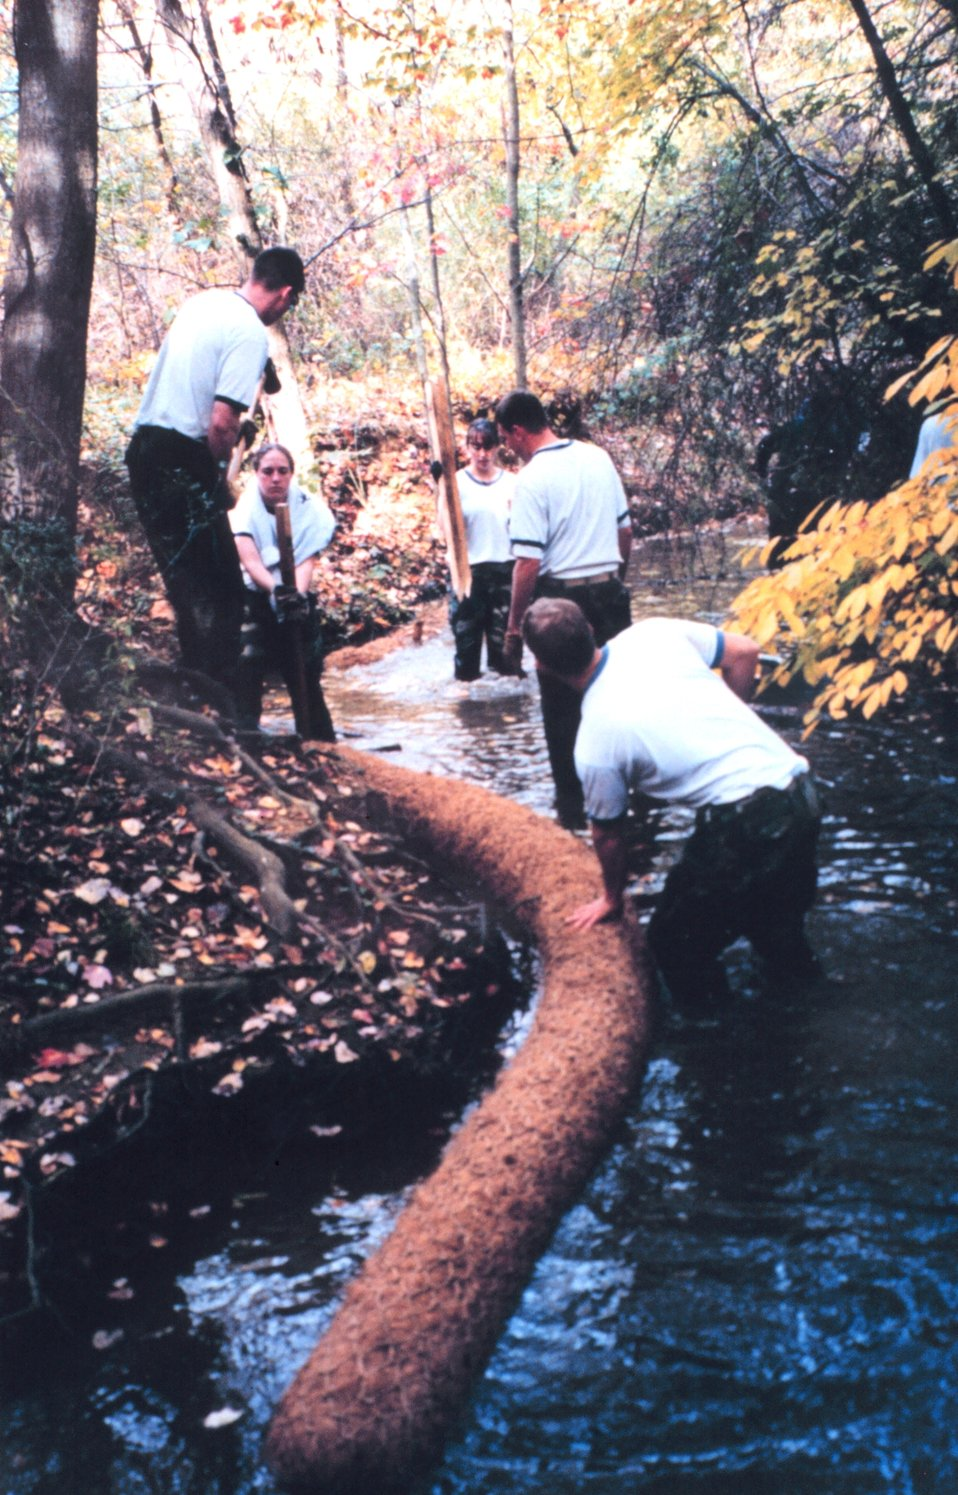 Installing Biologs to abate erosion problems along Spa Creek.